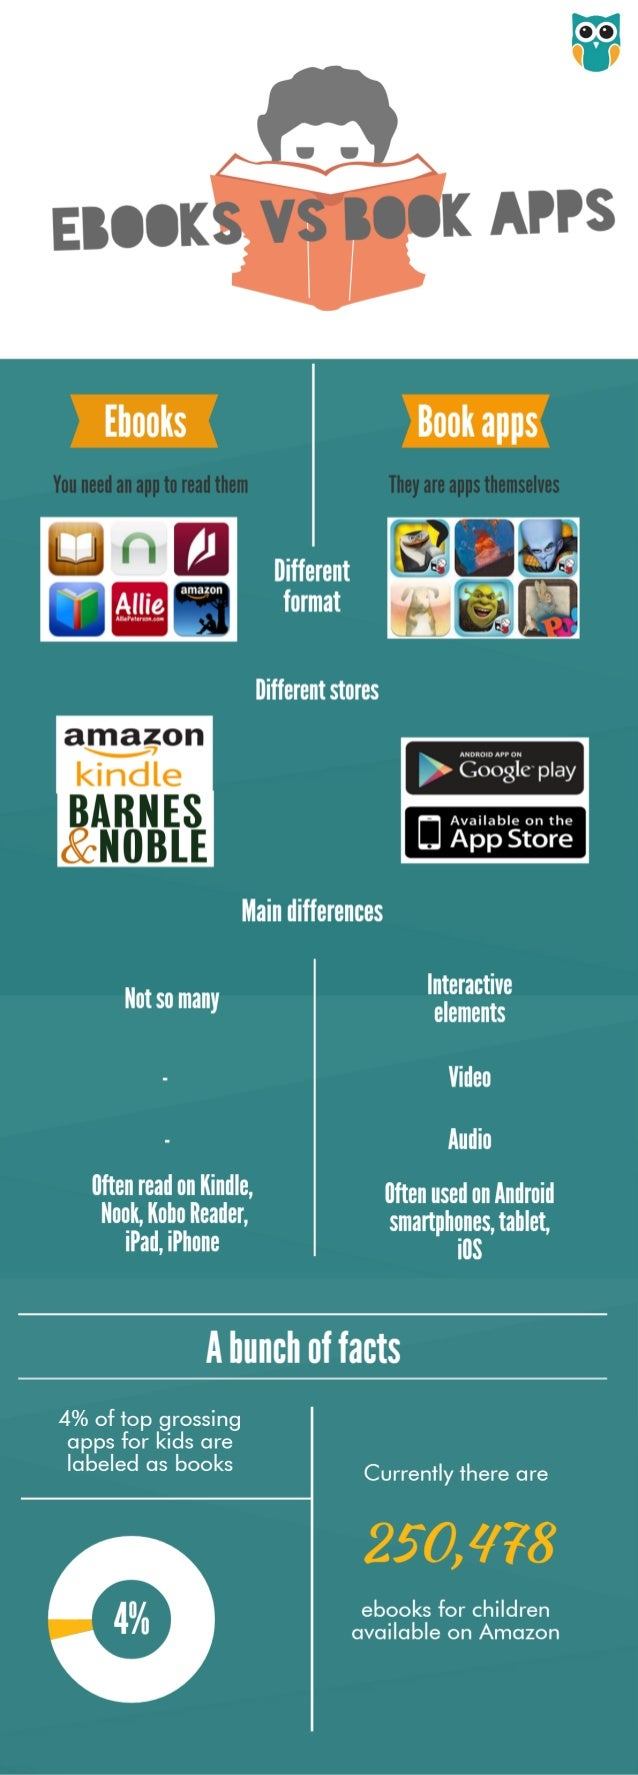 "Different format Different stores - Google"" play l p Xàäšėafë   Main differences  ""singer Video Audio Often read on Kindle..."